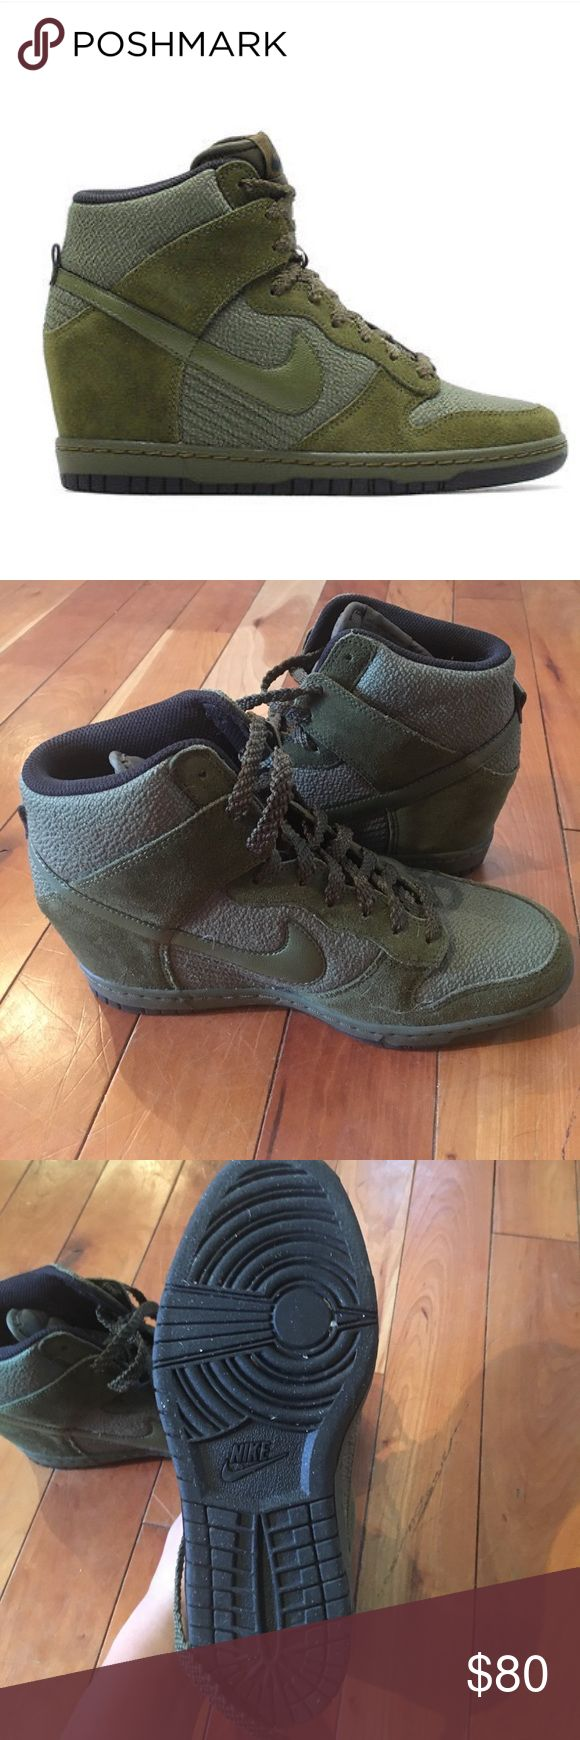 Nike Wedge Sneakers Cute Nike Wedge sneakers in olive green. Worn only once! Perfect condition! Nike Shoes Wedges